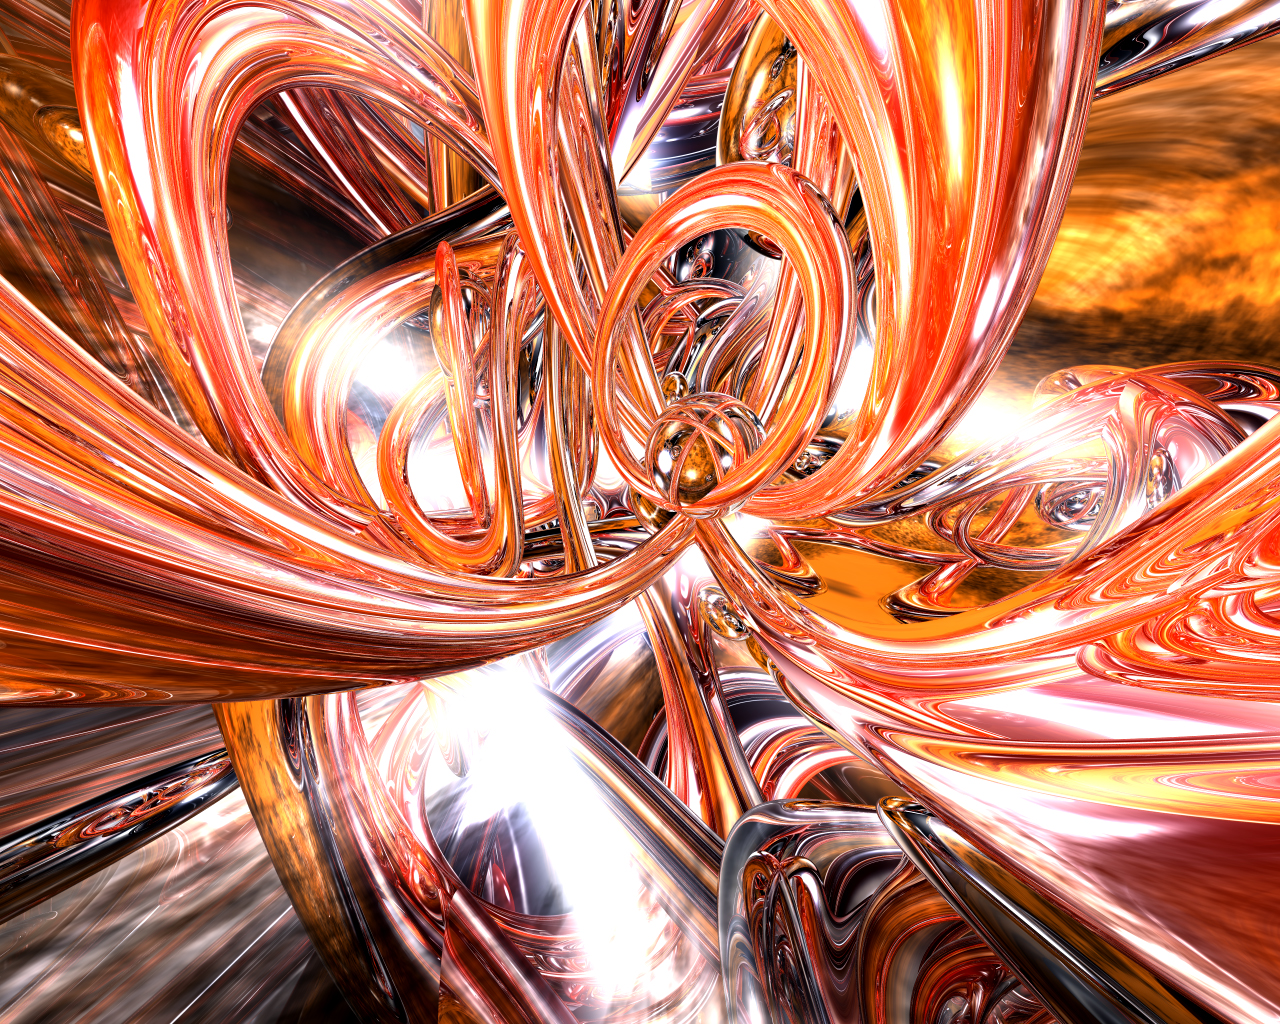 3D Abstract Desktop Wallpapers